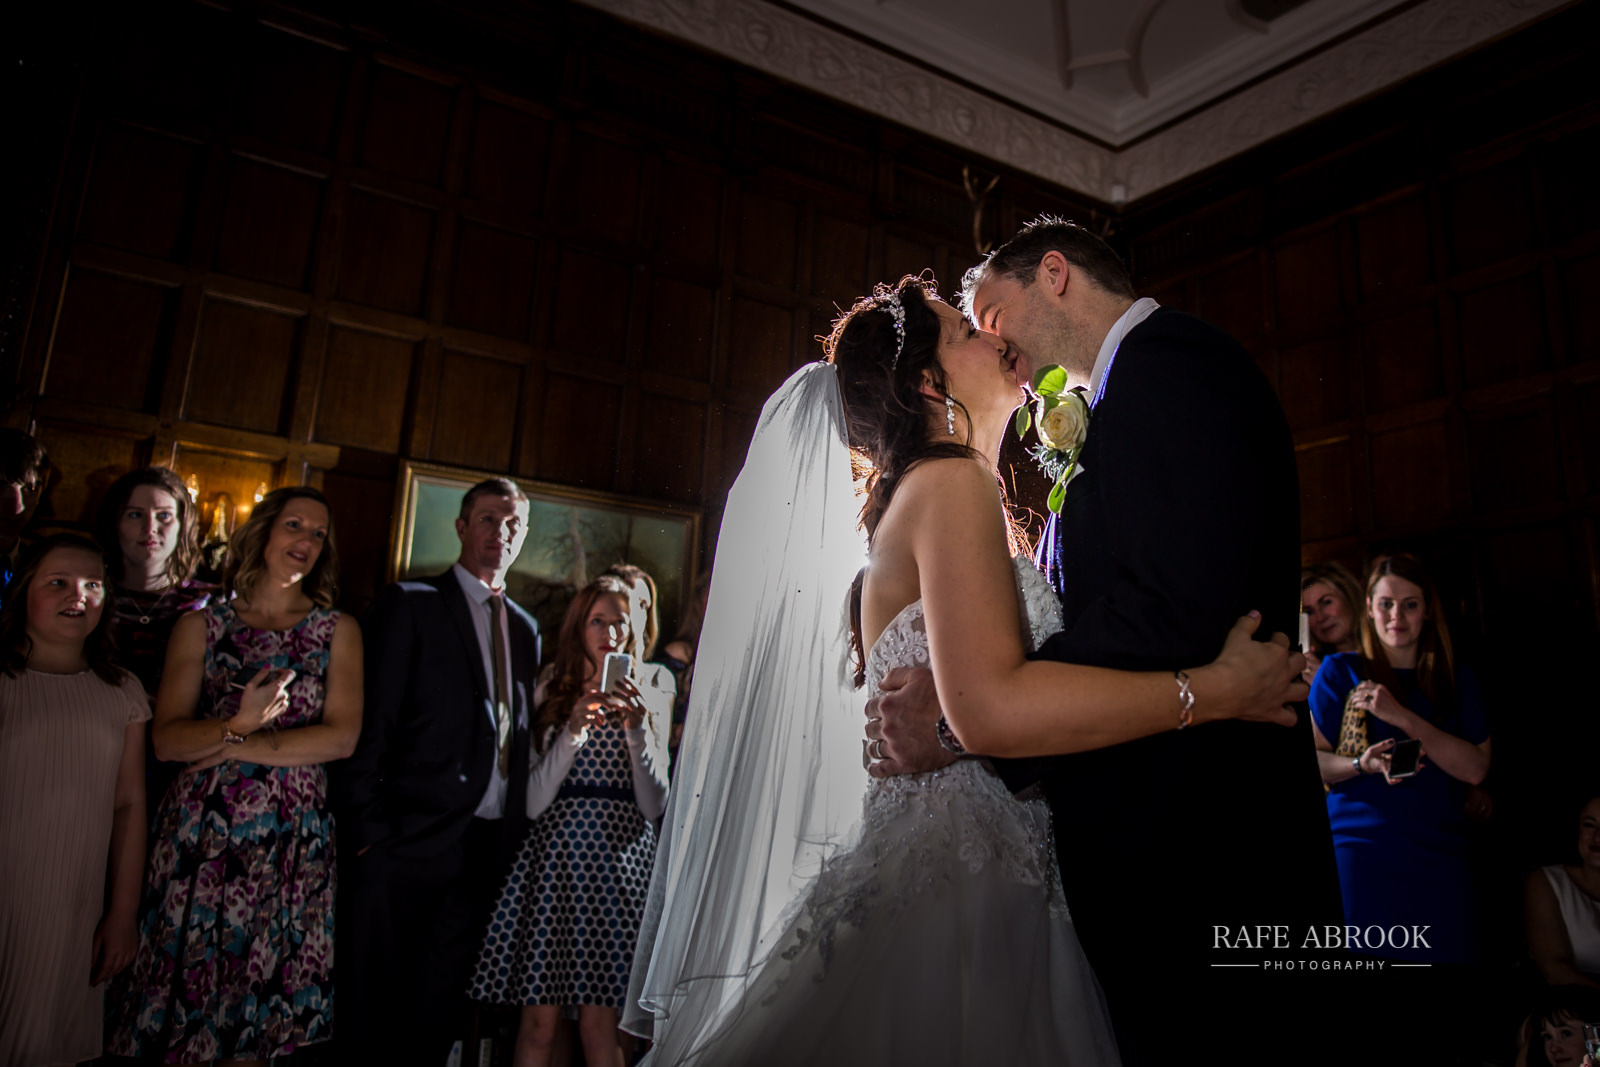 goldsborough hall wedding harrogate knaresborough yorkshire hertfordshire wedding photographer-1434.jpg